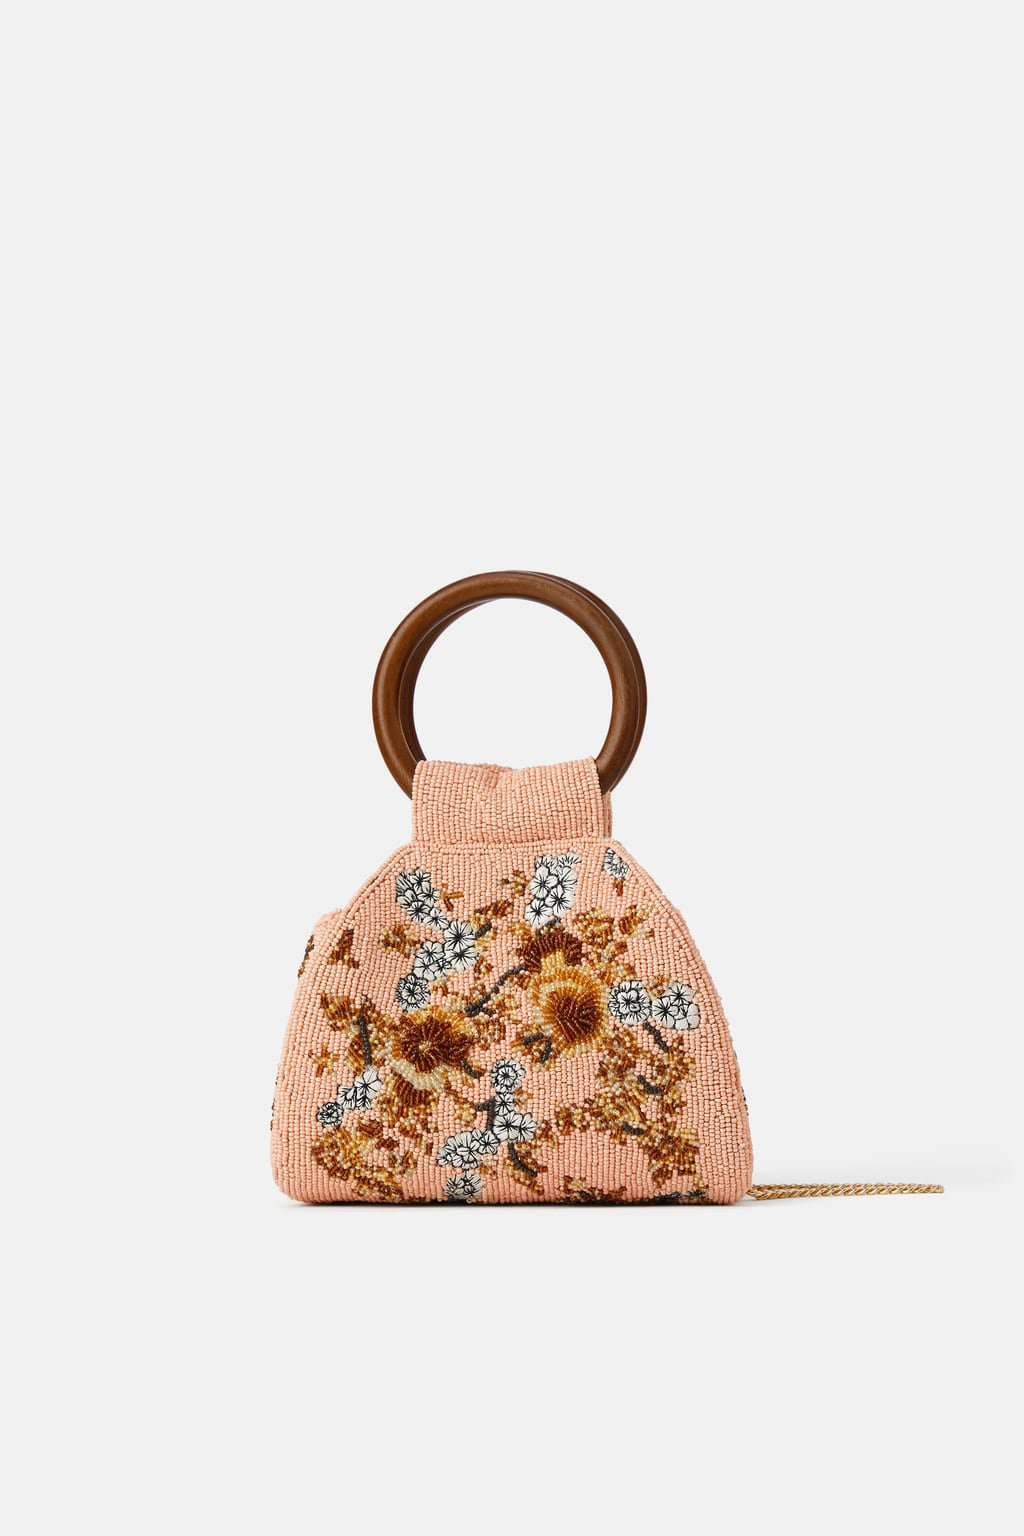 BEADED CROSSBODY BAG WITH WOODEN HANDLES - NEW IN-WOMAN | ZARA United States pink